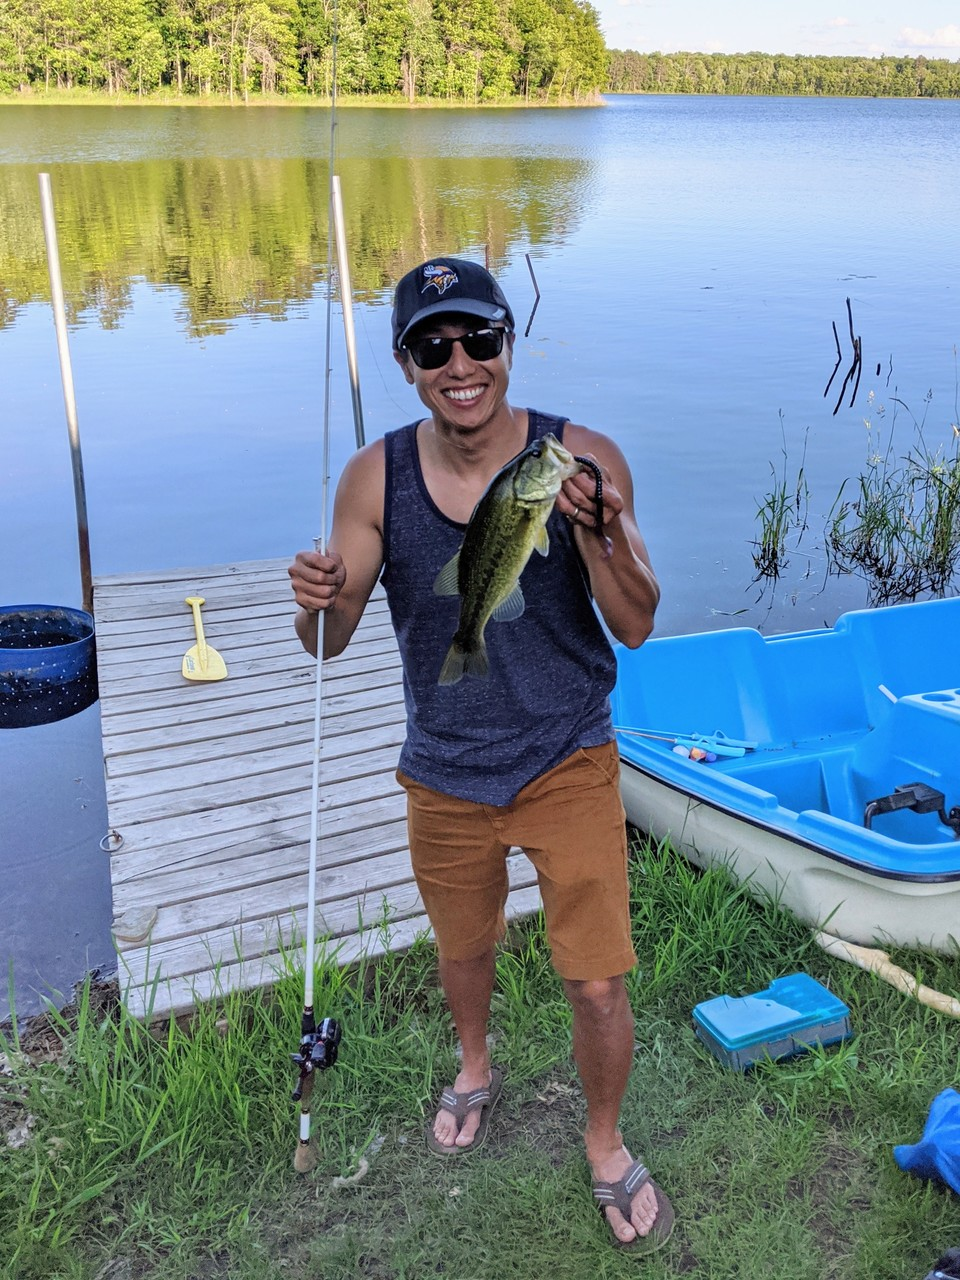 A smiling Asian man holding a fish and standing in front of a lake.